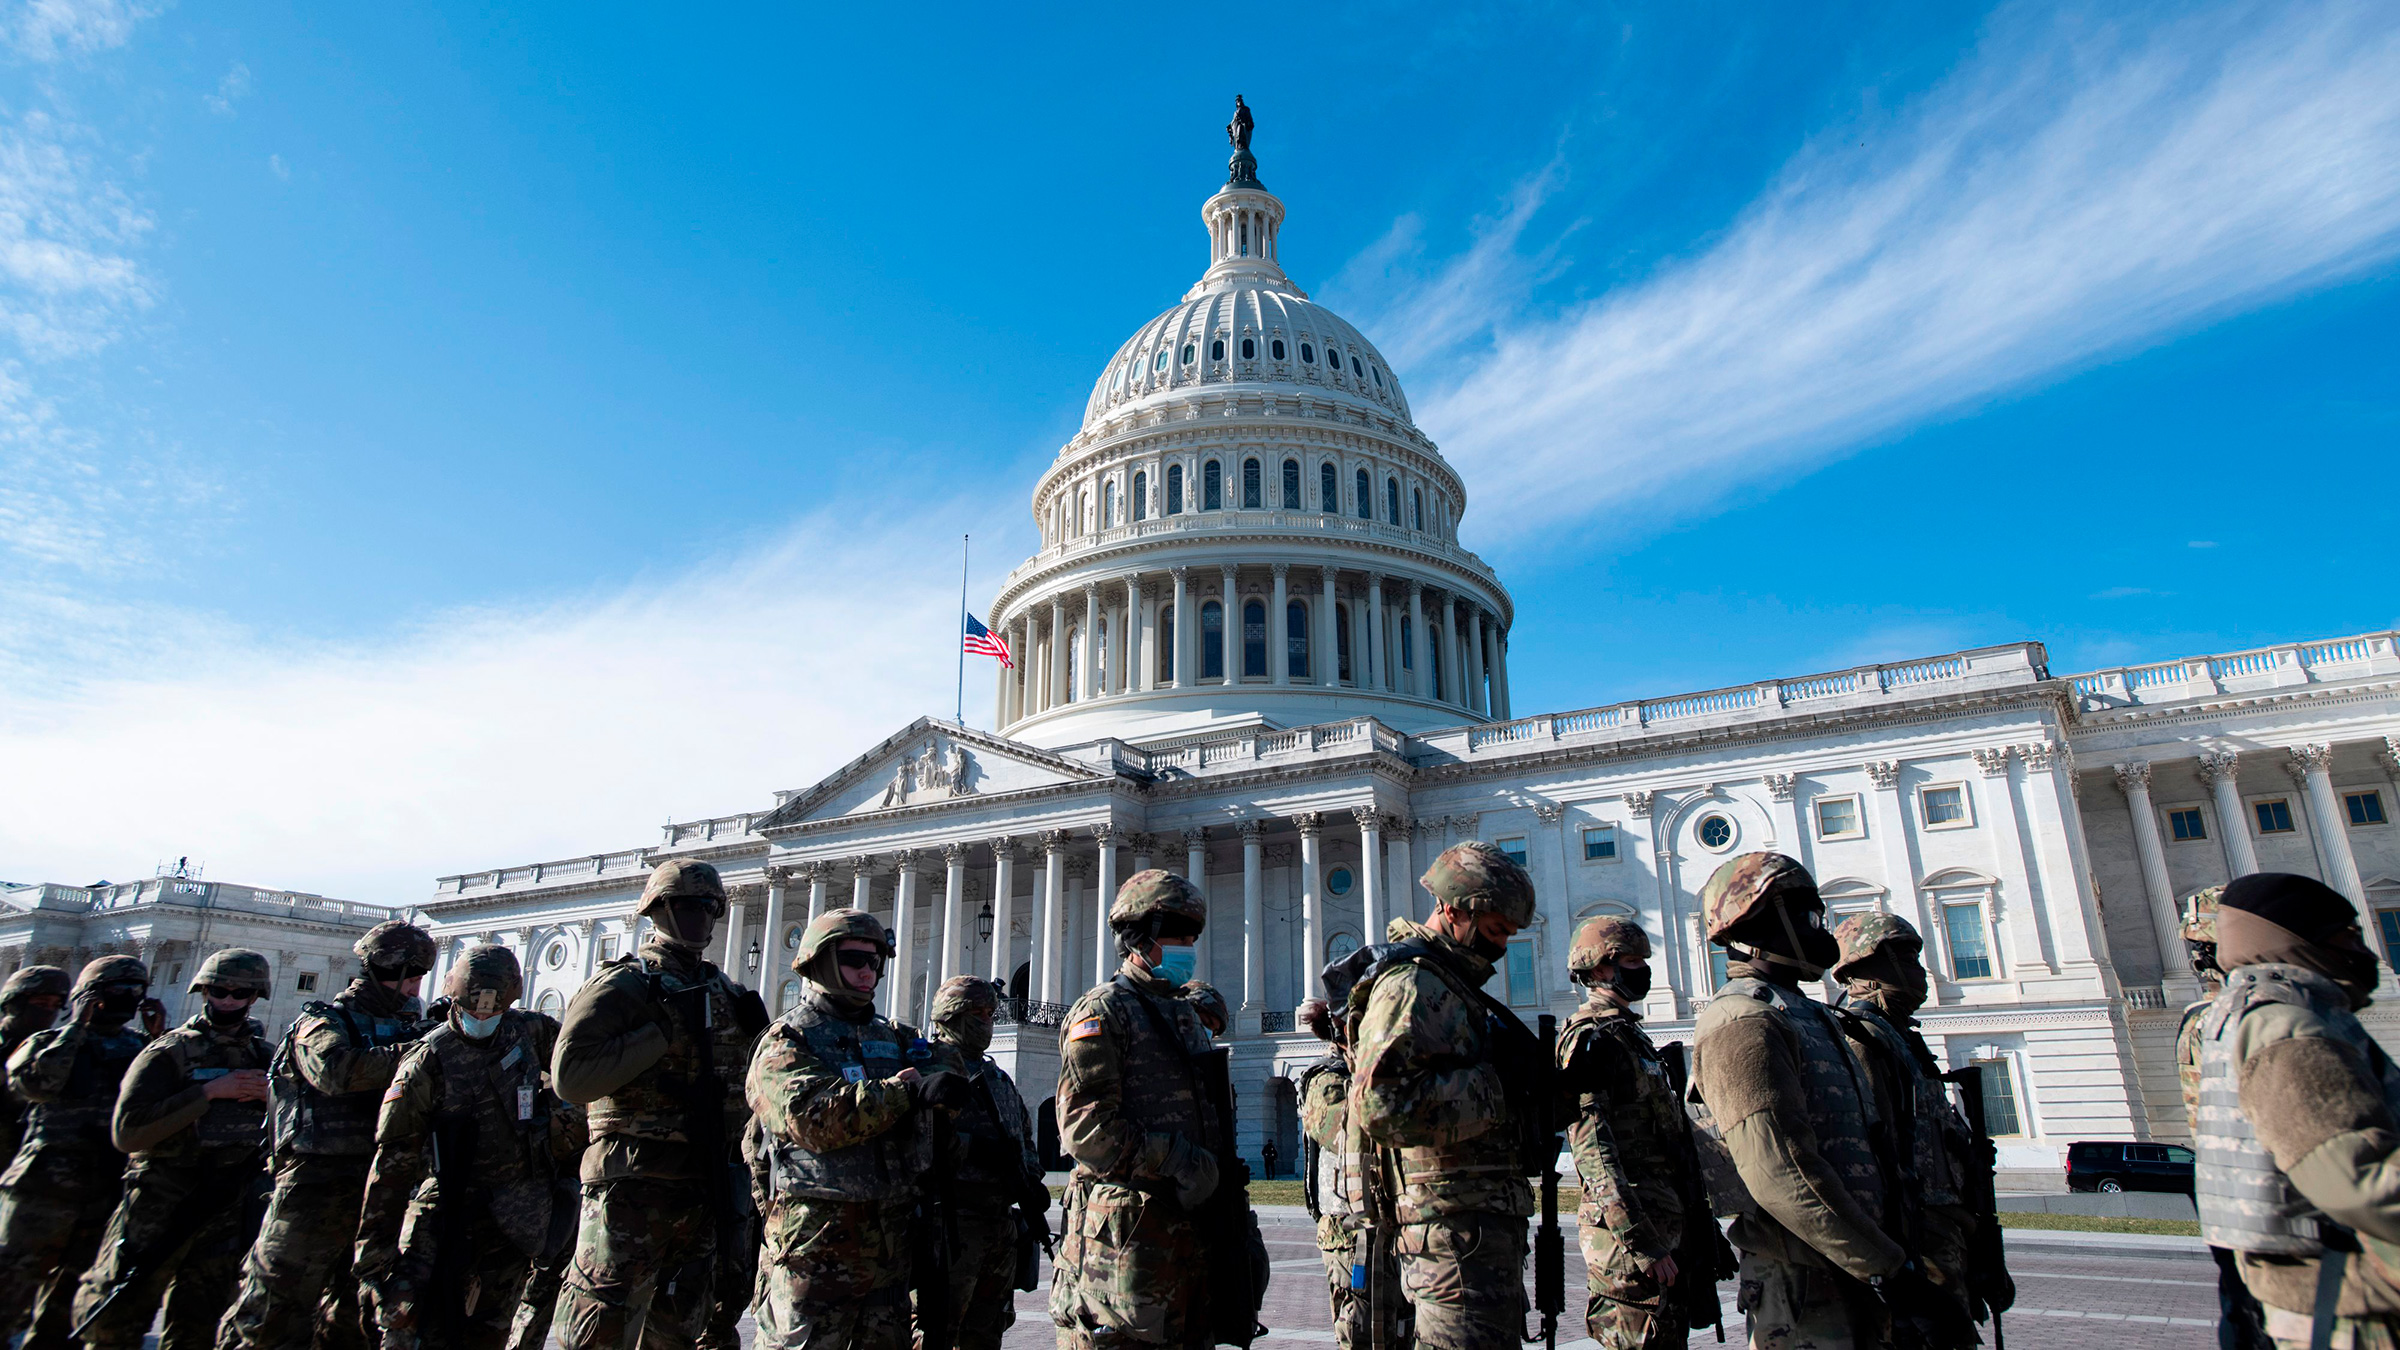 National Guard members are seen outside the US Capitol on January 18, in Washington, DC.